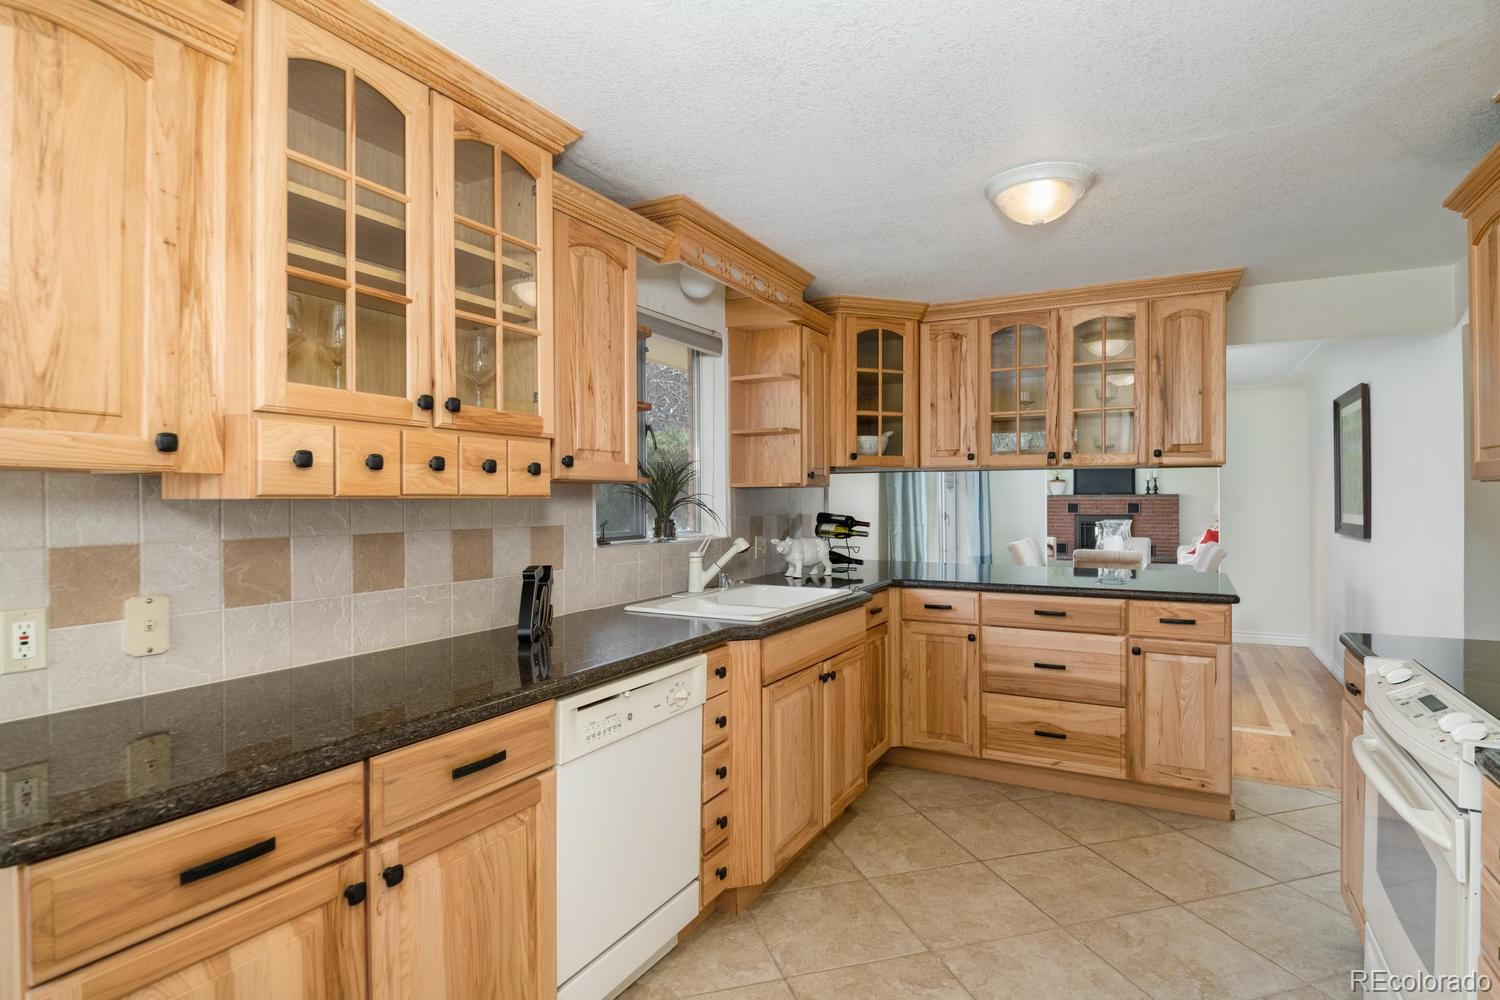 MLS# 9108794 - 20 - 8755 W 73rd Place, Arvada, CO 80005